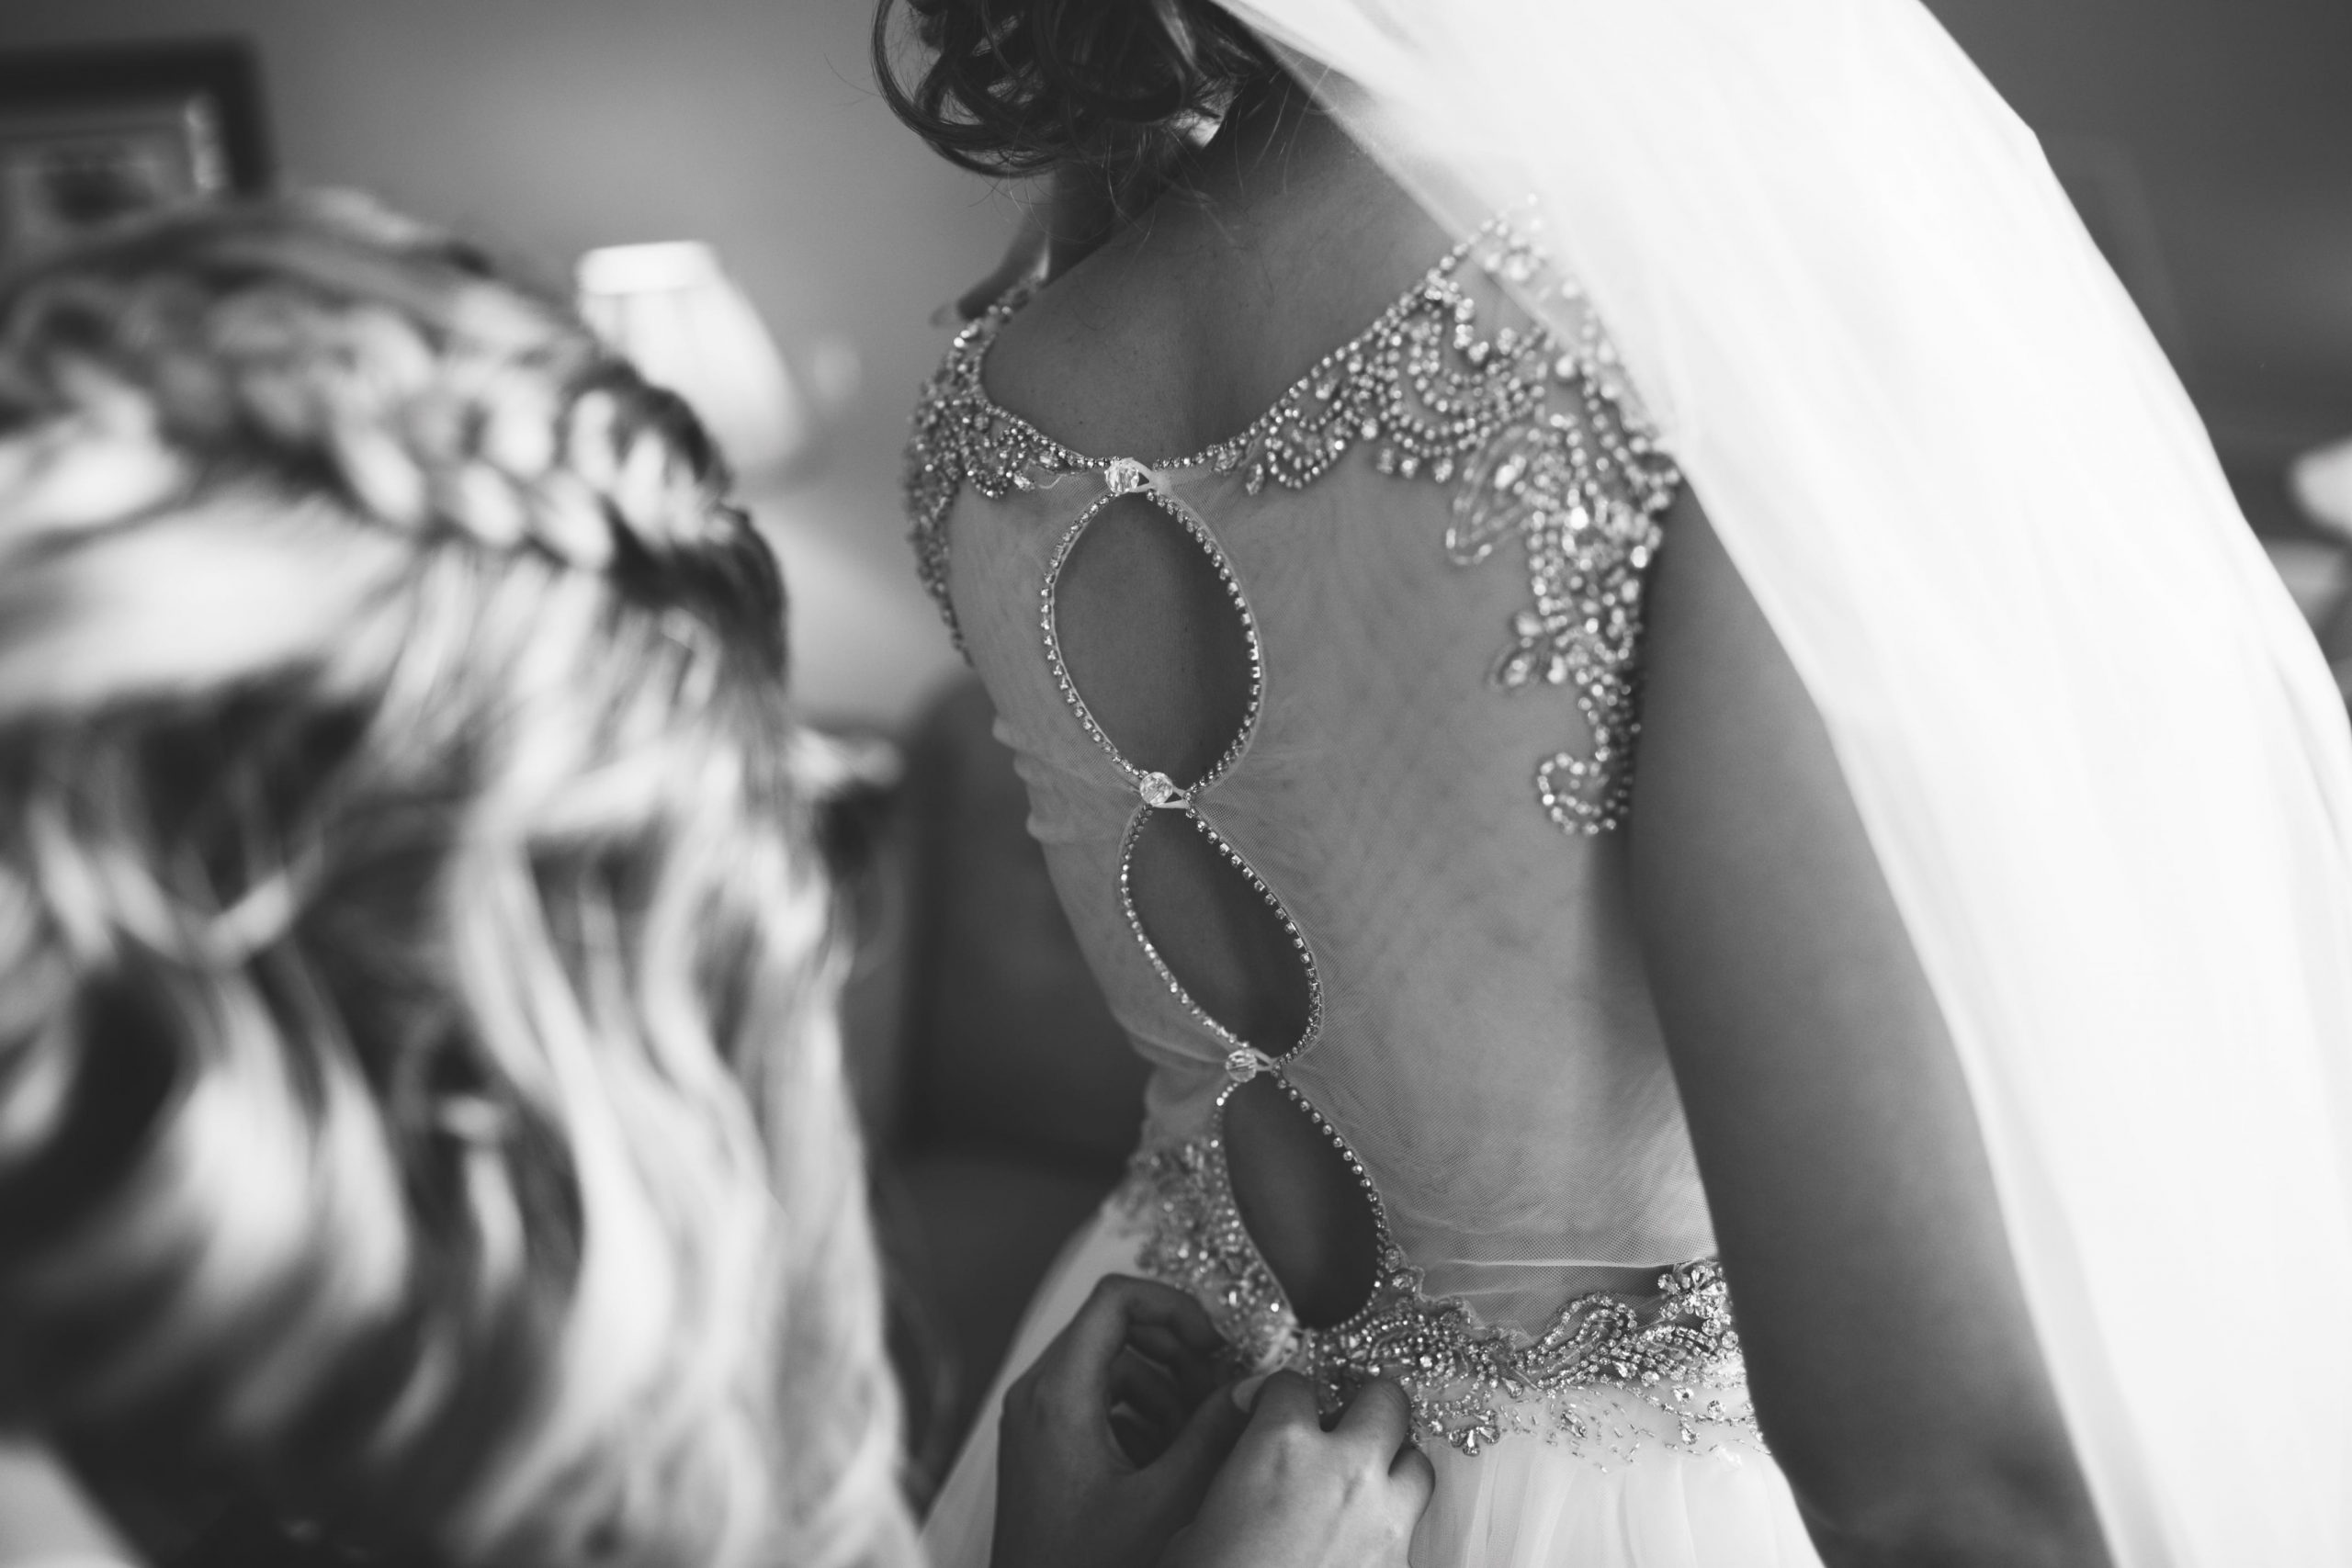 black and white photo of bride's gown details